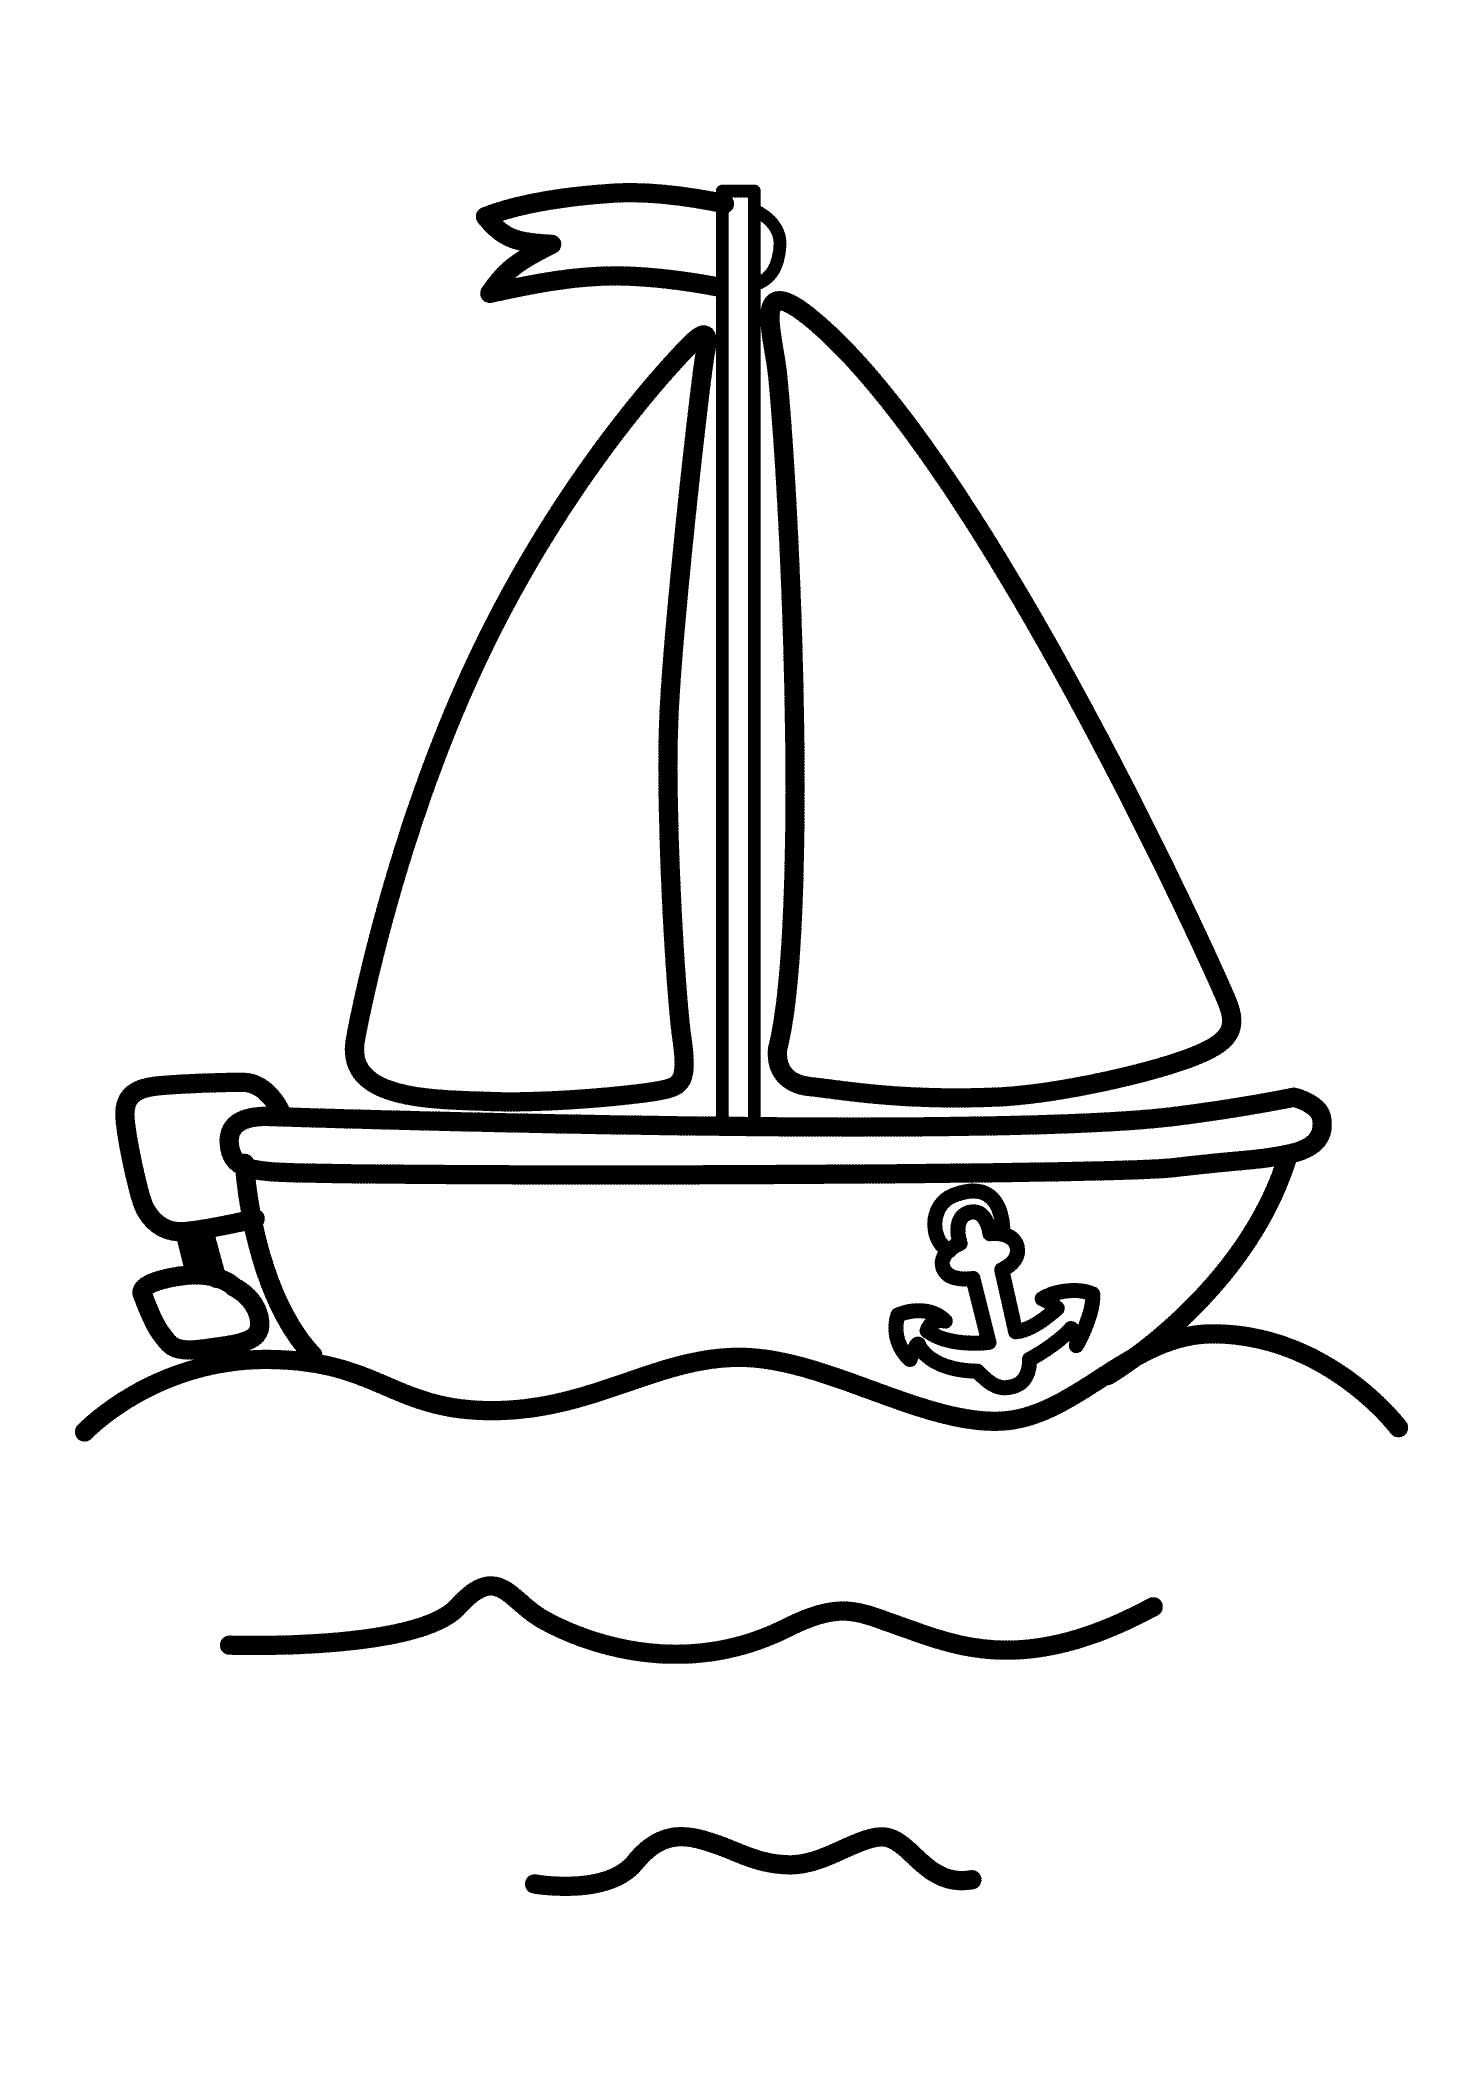 Pin By Shreya Thakur On Free Coloring Pages | Coloring Pages